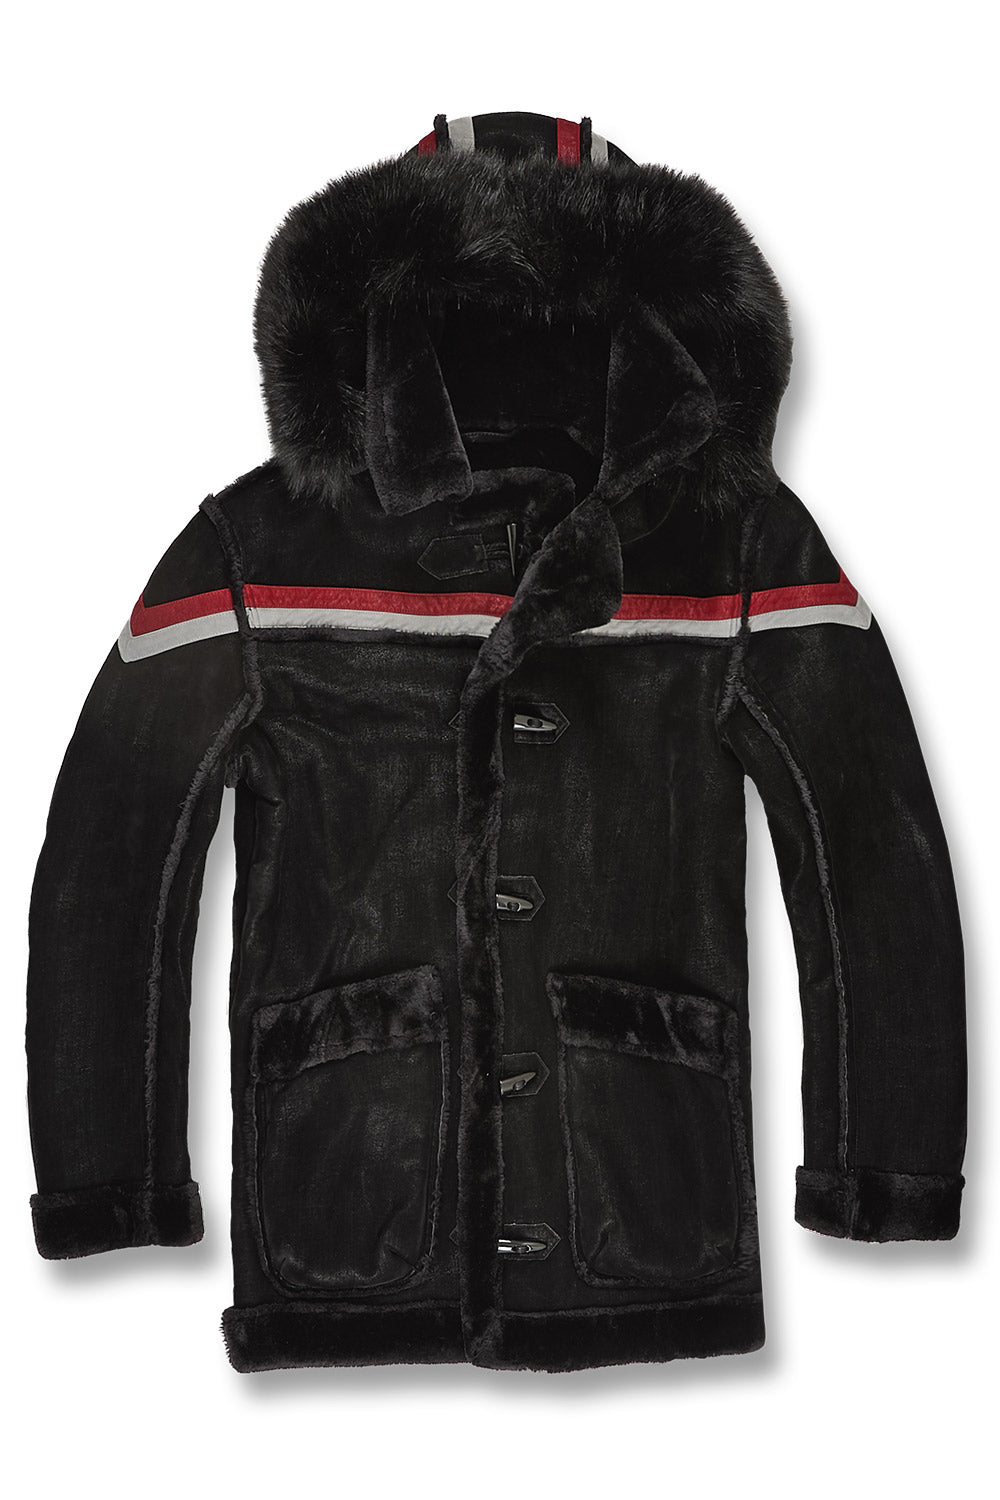 Tuscany Striped Shearling Jacket (Black)